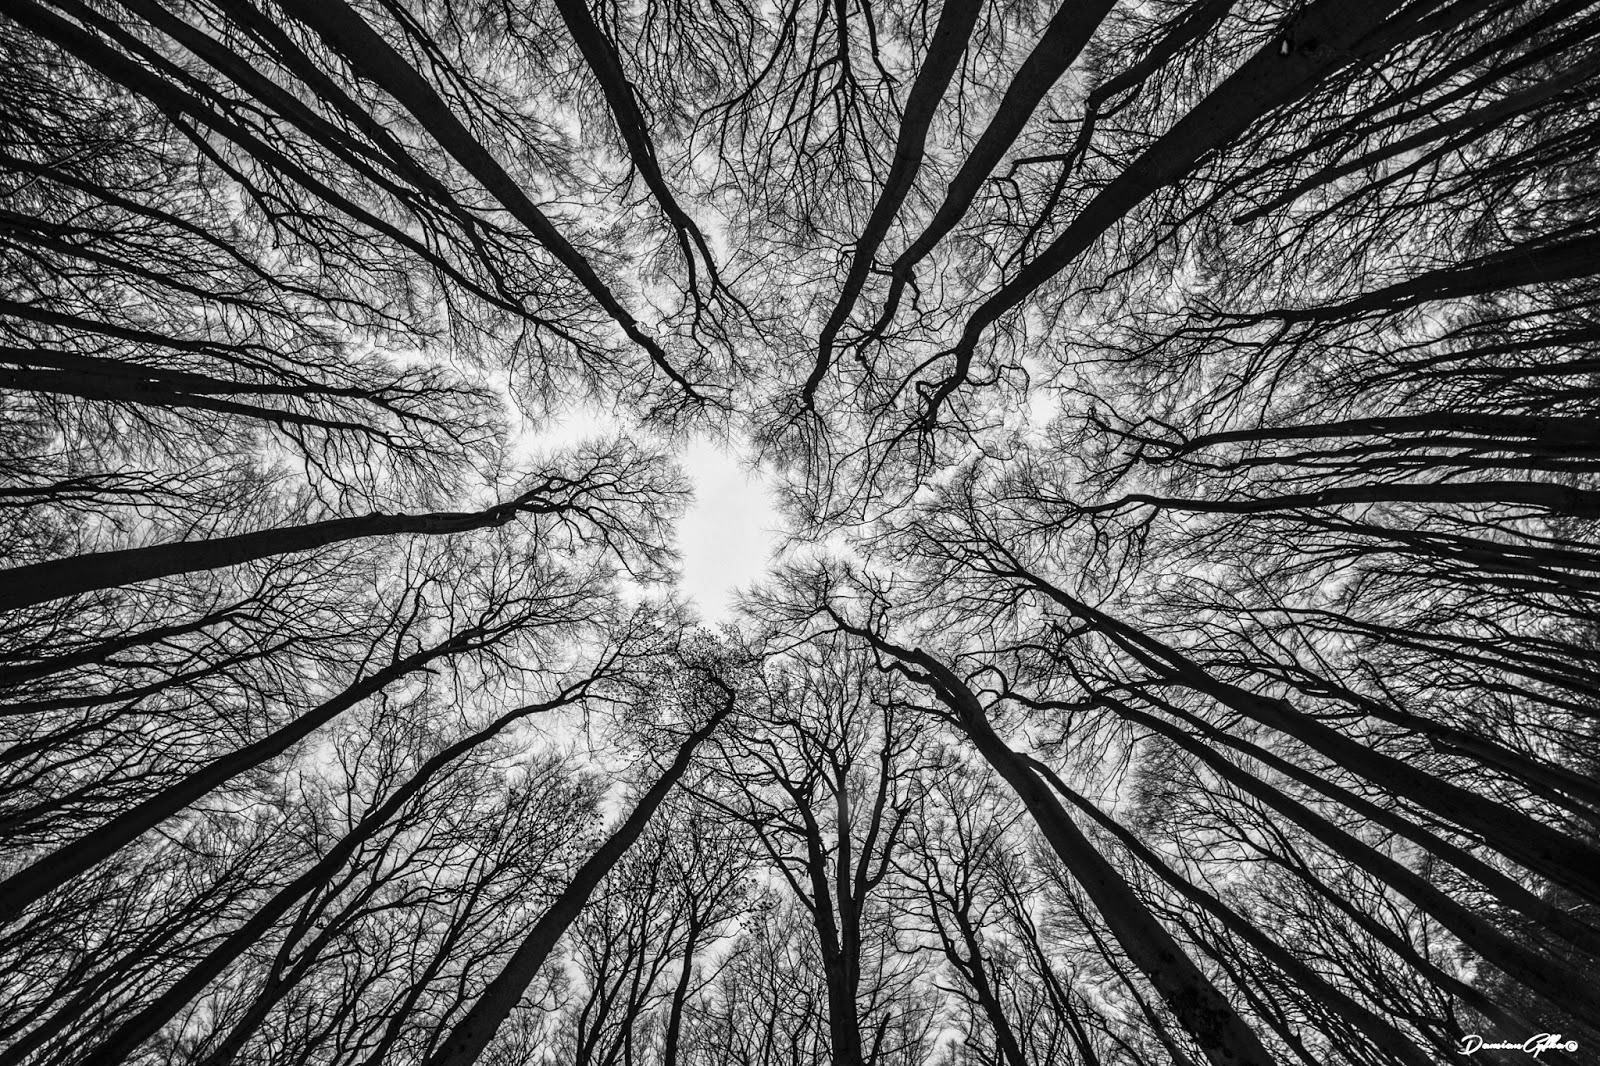 500px forest nature trees rain overlapping 4d fisheye visit wonders natural iso sham named standing taken another perfect photograph